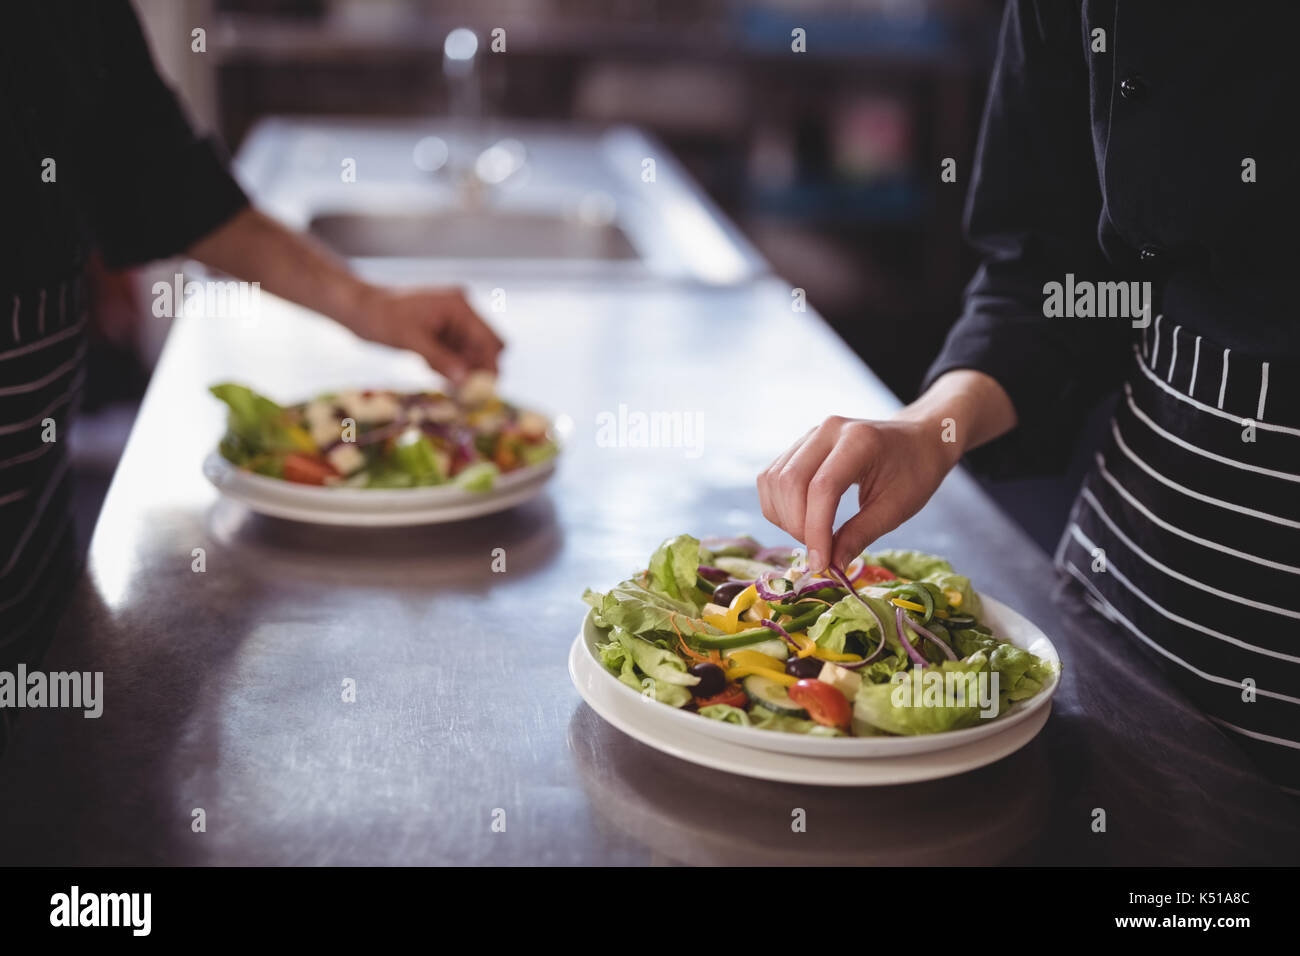 Midsection of waiter and waitress preparing fresh salad at counter in commercial kitchen - Stock Image